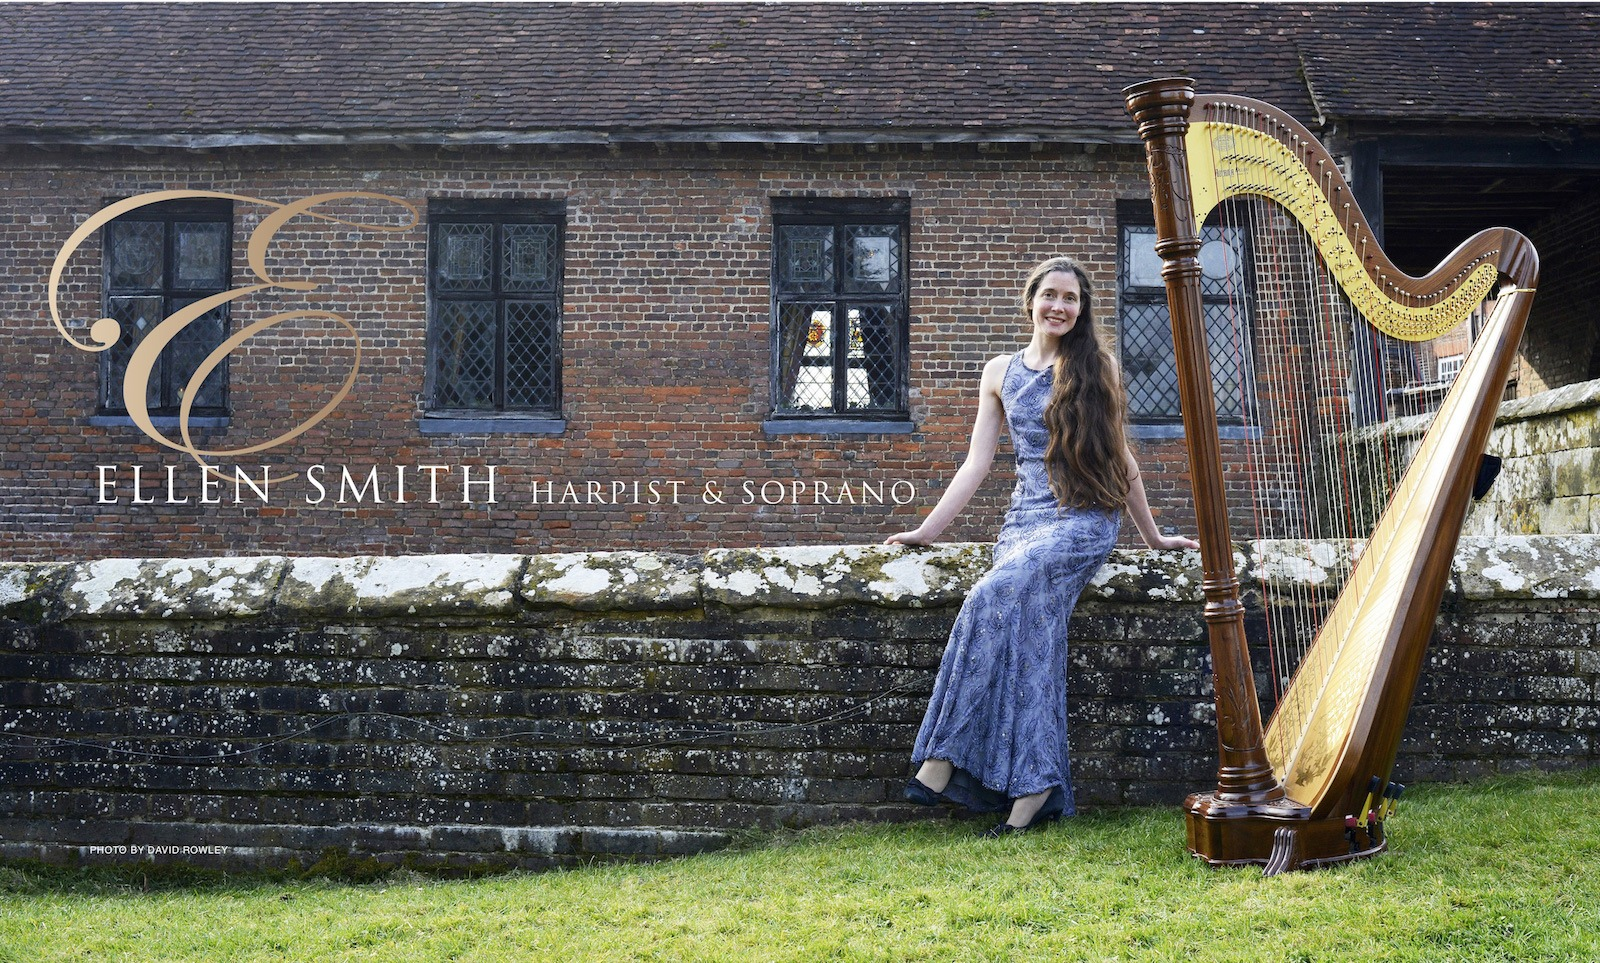 Ellen Smith, harpist and soprano